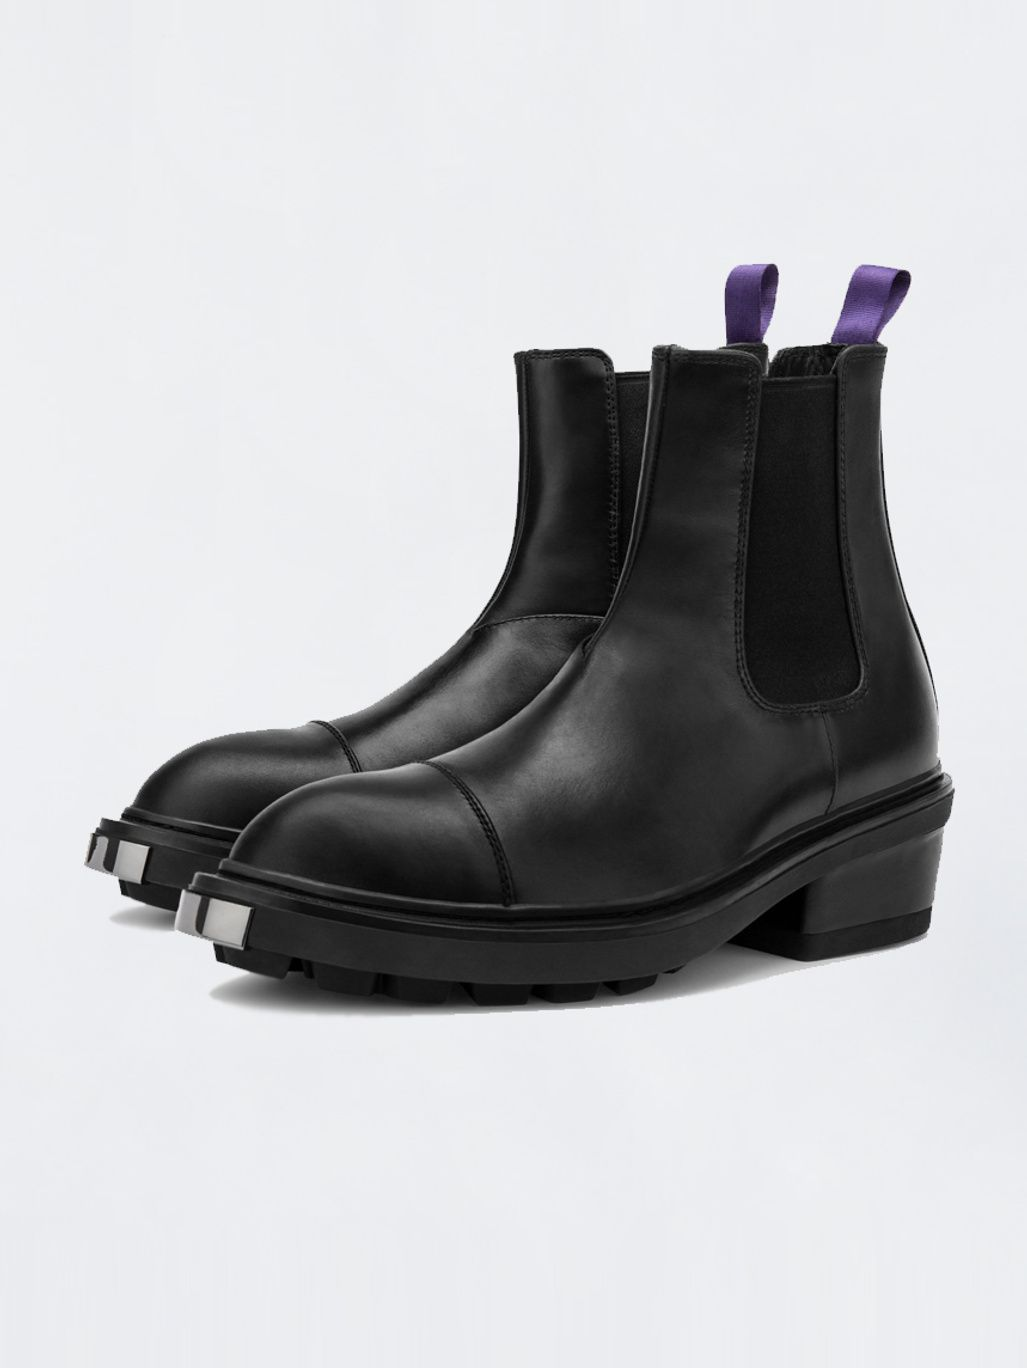 Nikita Leather Black Eytys Leather Chelsea Boots Boots Leather